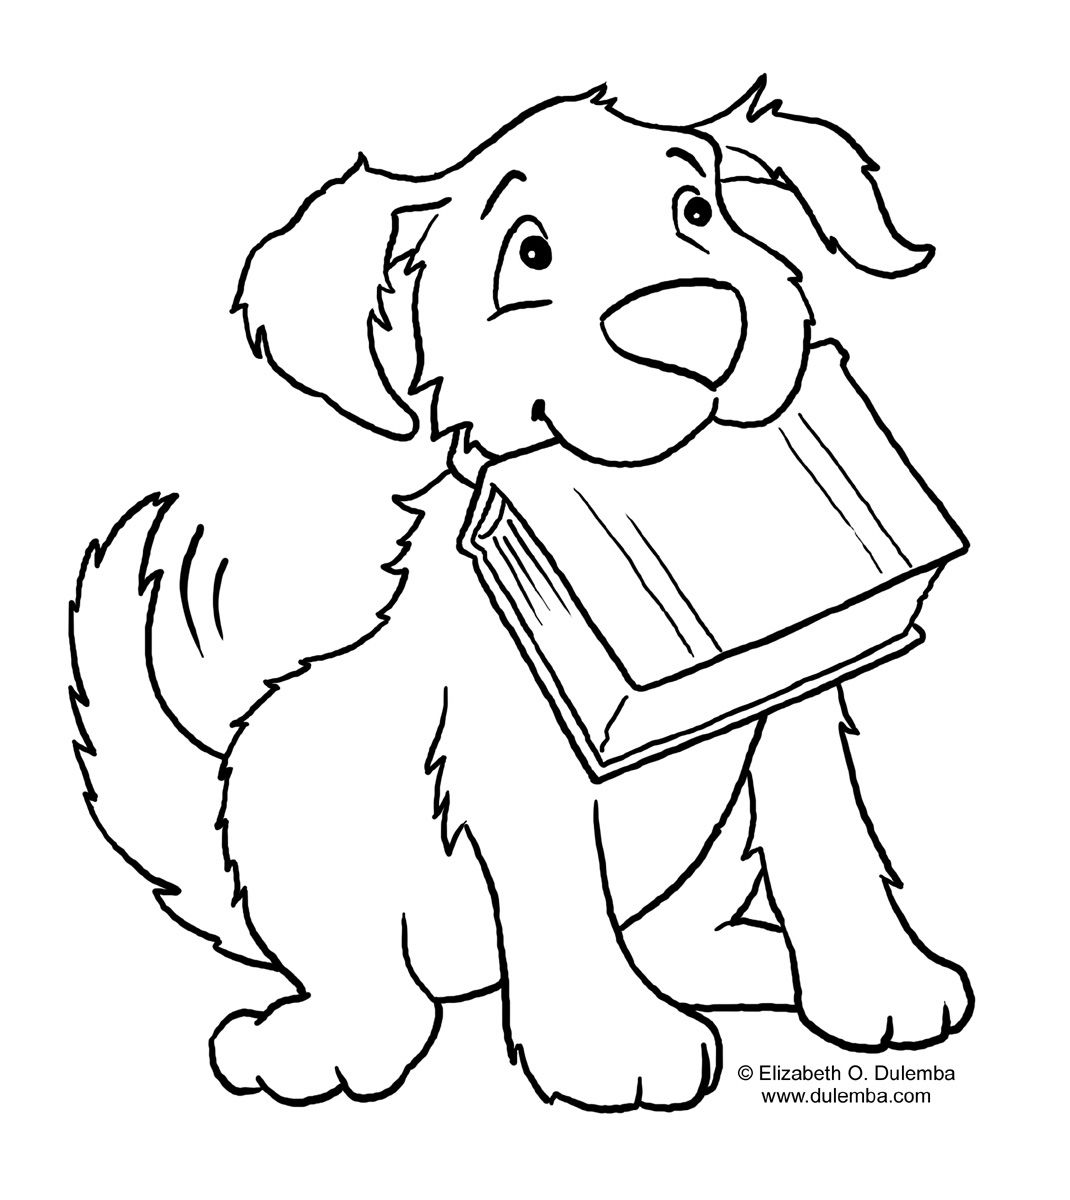 Dogs printable coloring pages for kids. Find on coloring-book of c ...